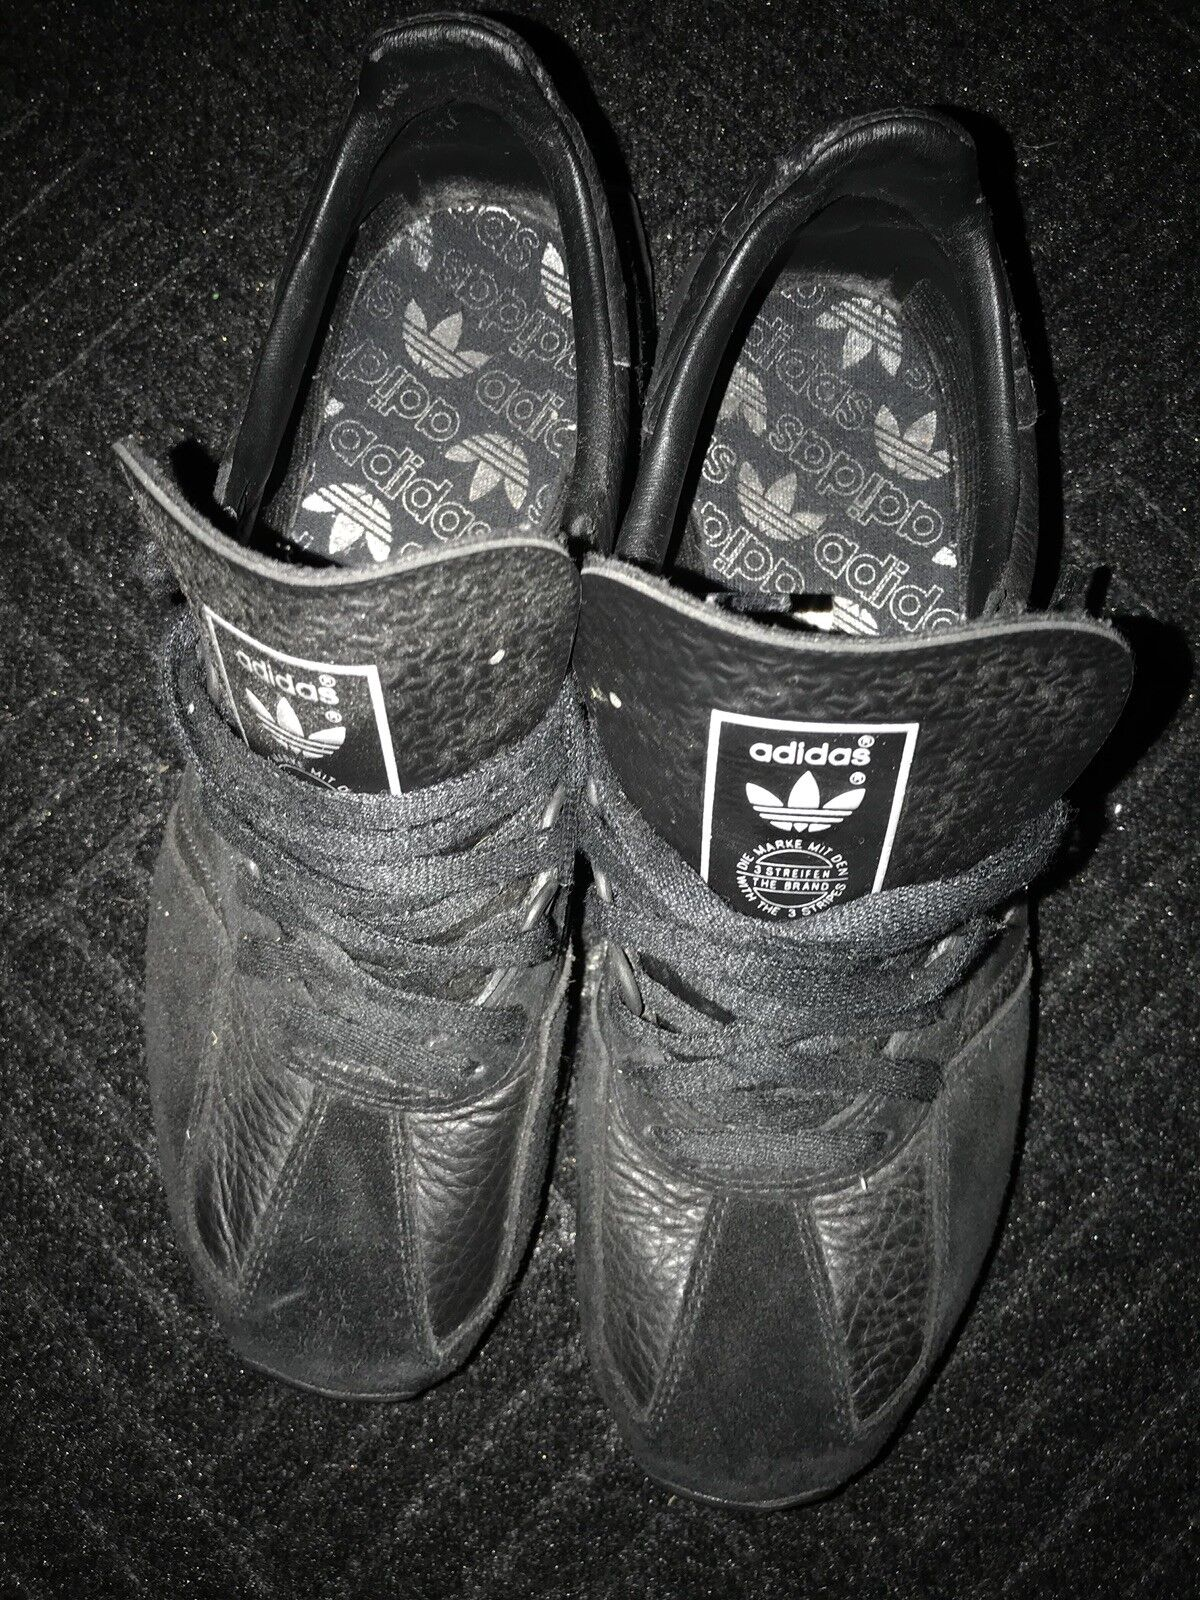 ADIDAS FORMEL 1   UBER RARE     GOOD CONDITION   NO RESERVE   SEE DETAILS  797642